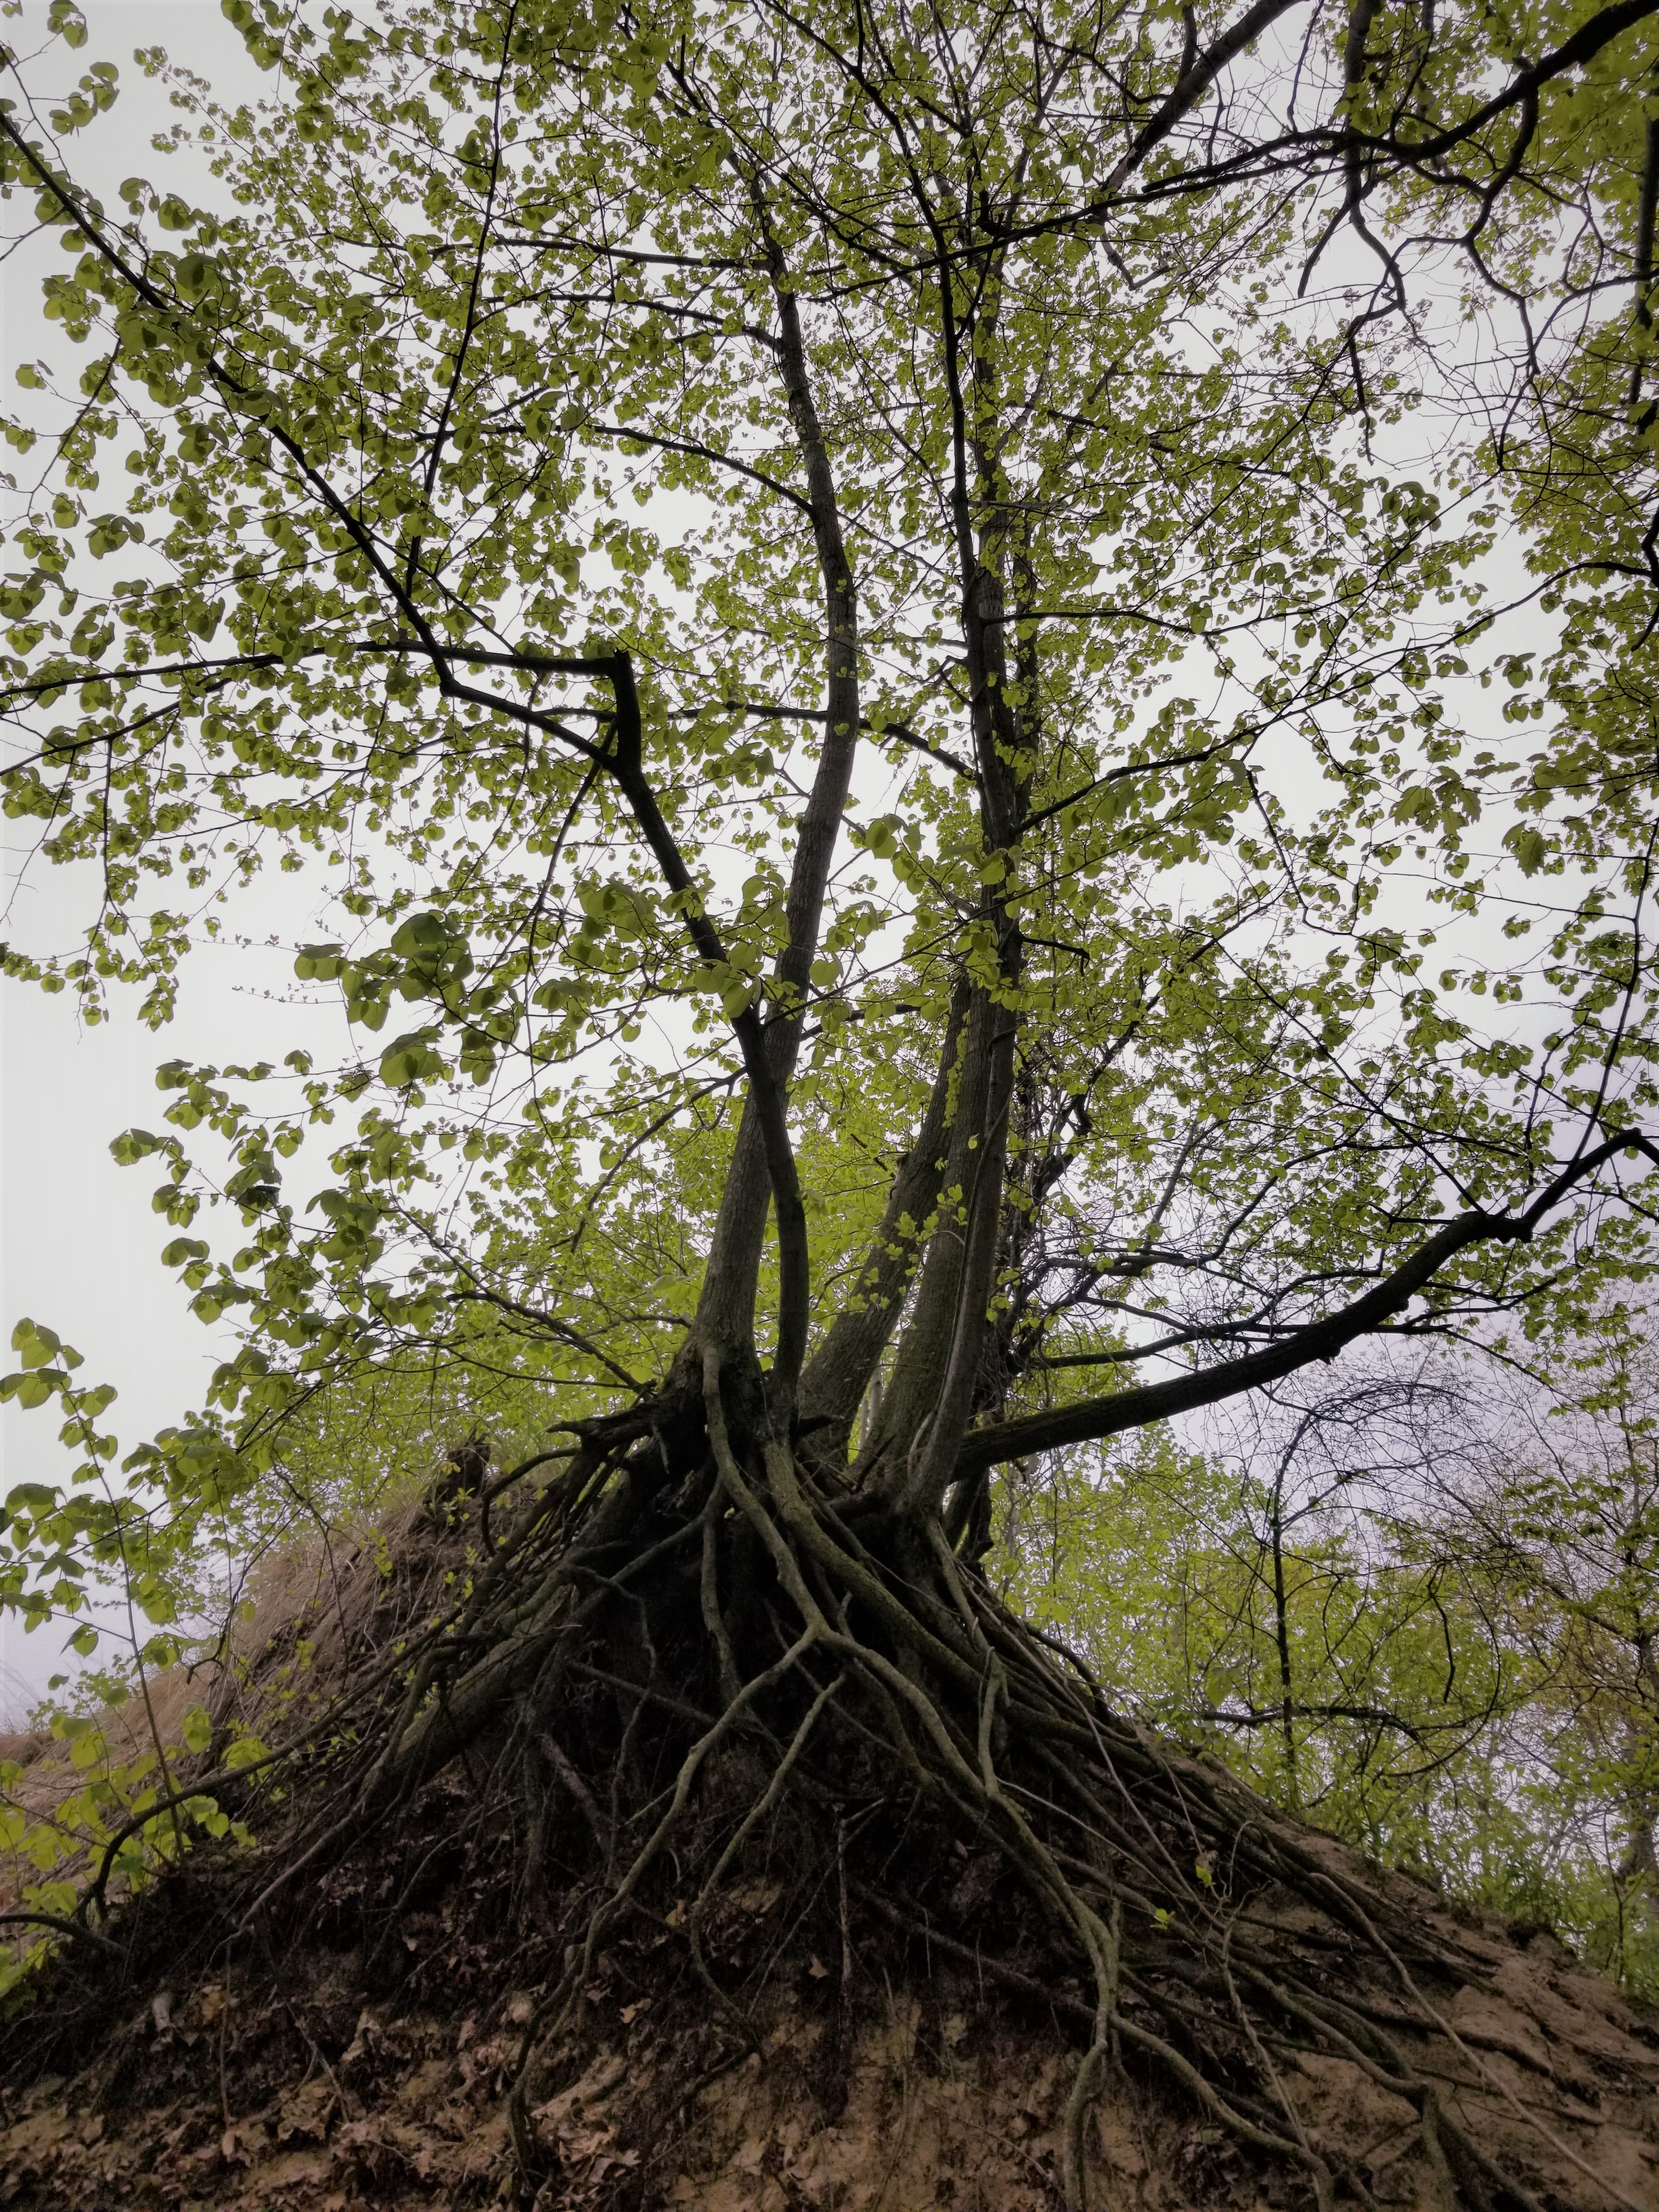 Uprooted rooted tree